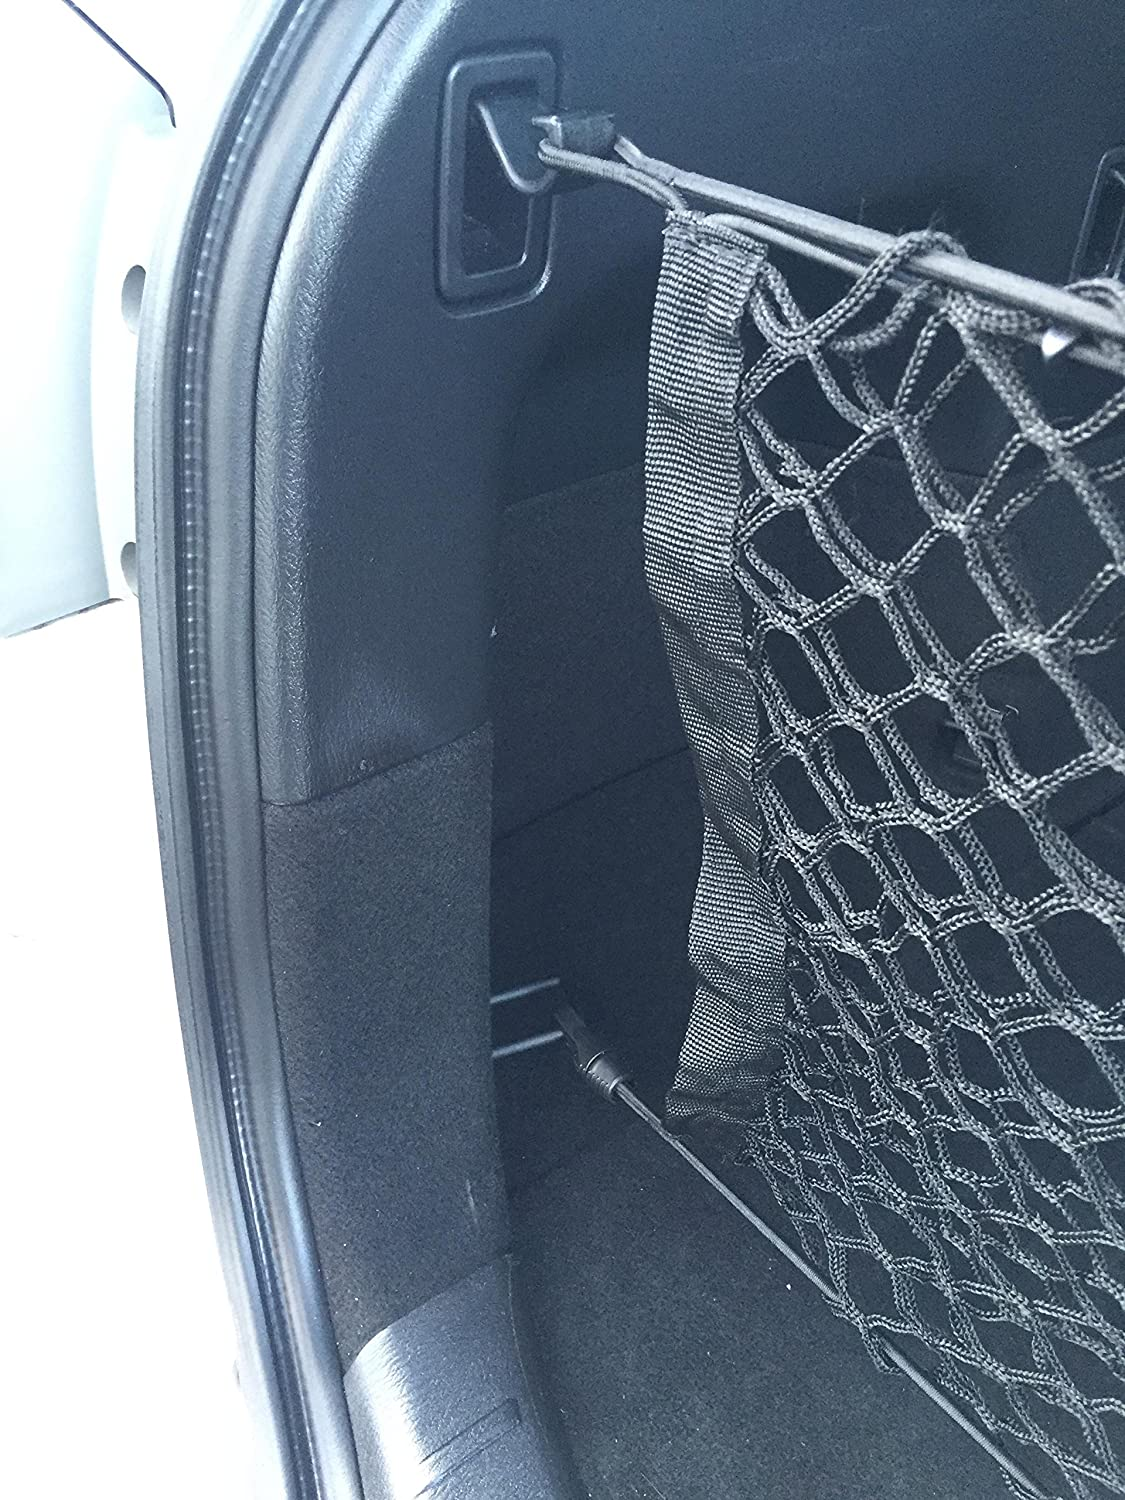 Envelope Style Trunk Cargo Net For MAZDA CX-9 2007 08 09 10 11 12 13 14 15 2016 2017 2018 NEW Trunknets Inc 4333199386